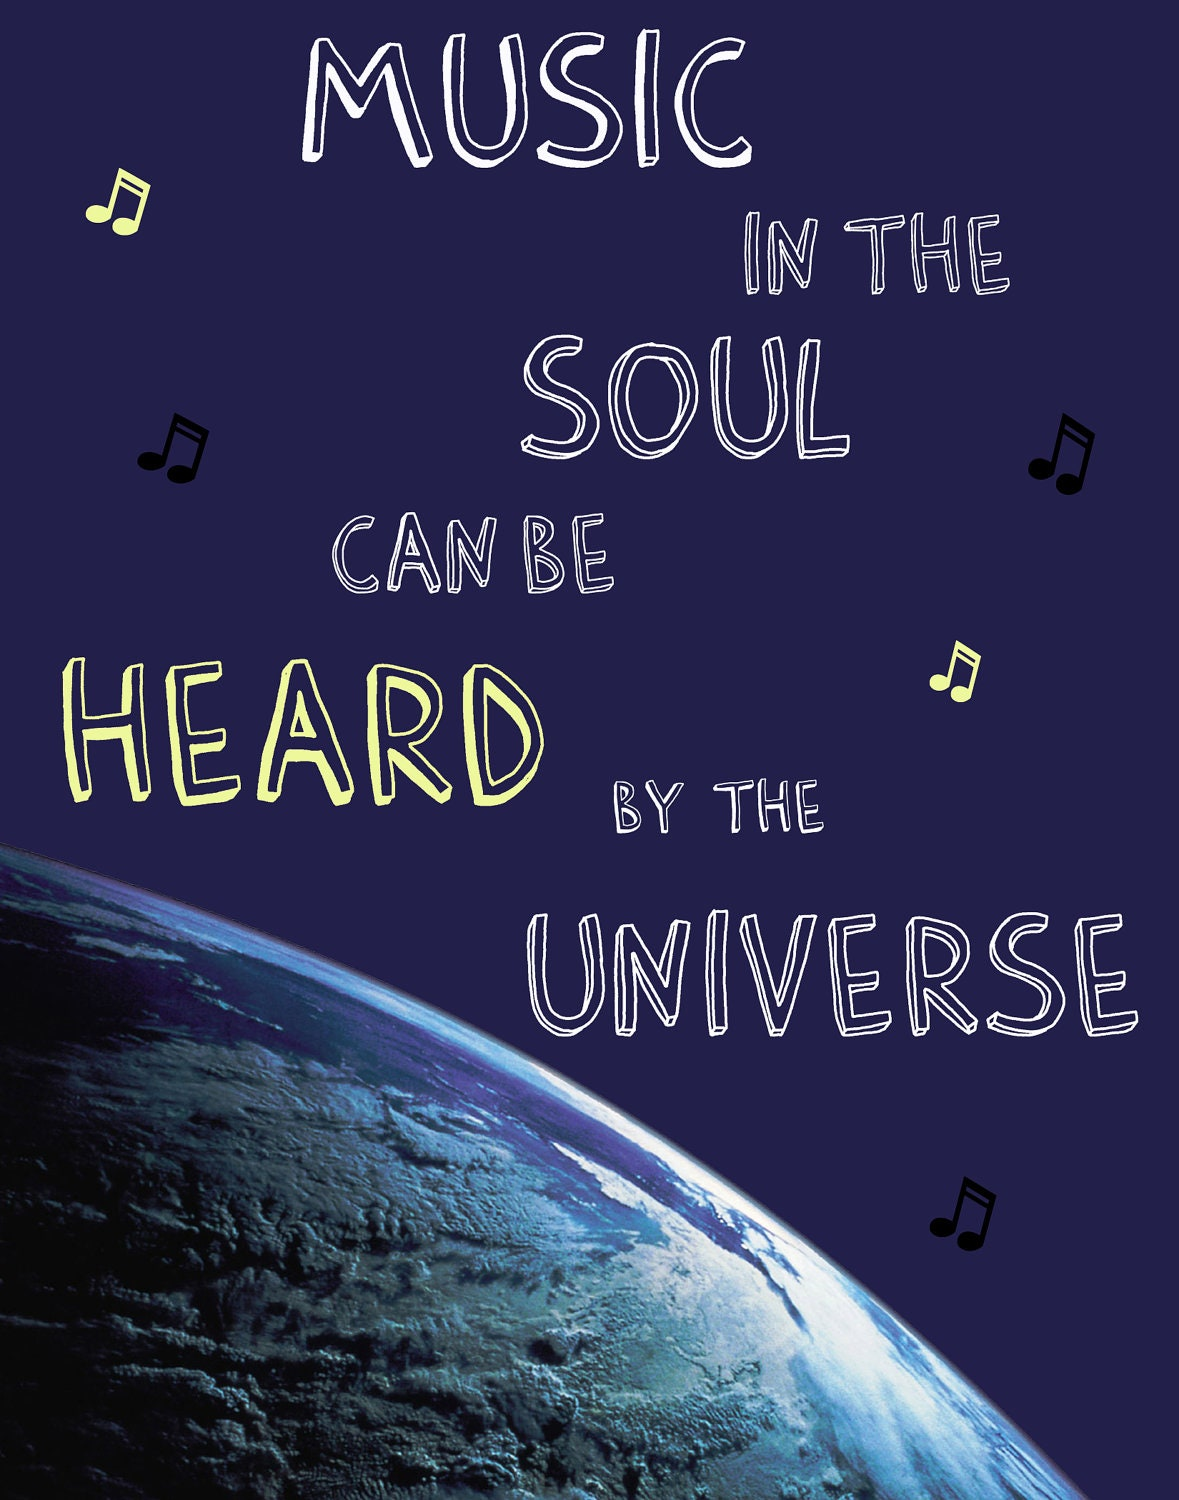 12 Inspirational Quotes For The Soul: Inspirational QUOTES Word Art POSTER Music In The Soul Can